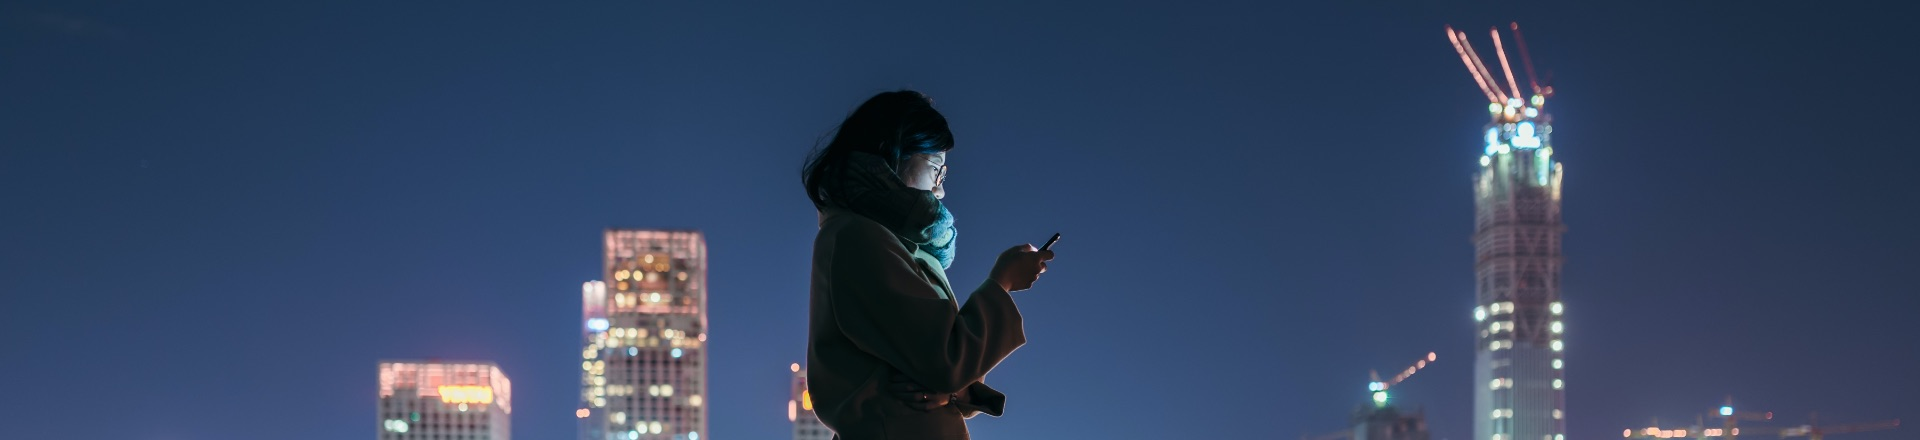 A person standing silhouetted against a city at night